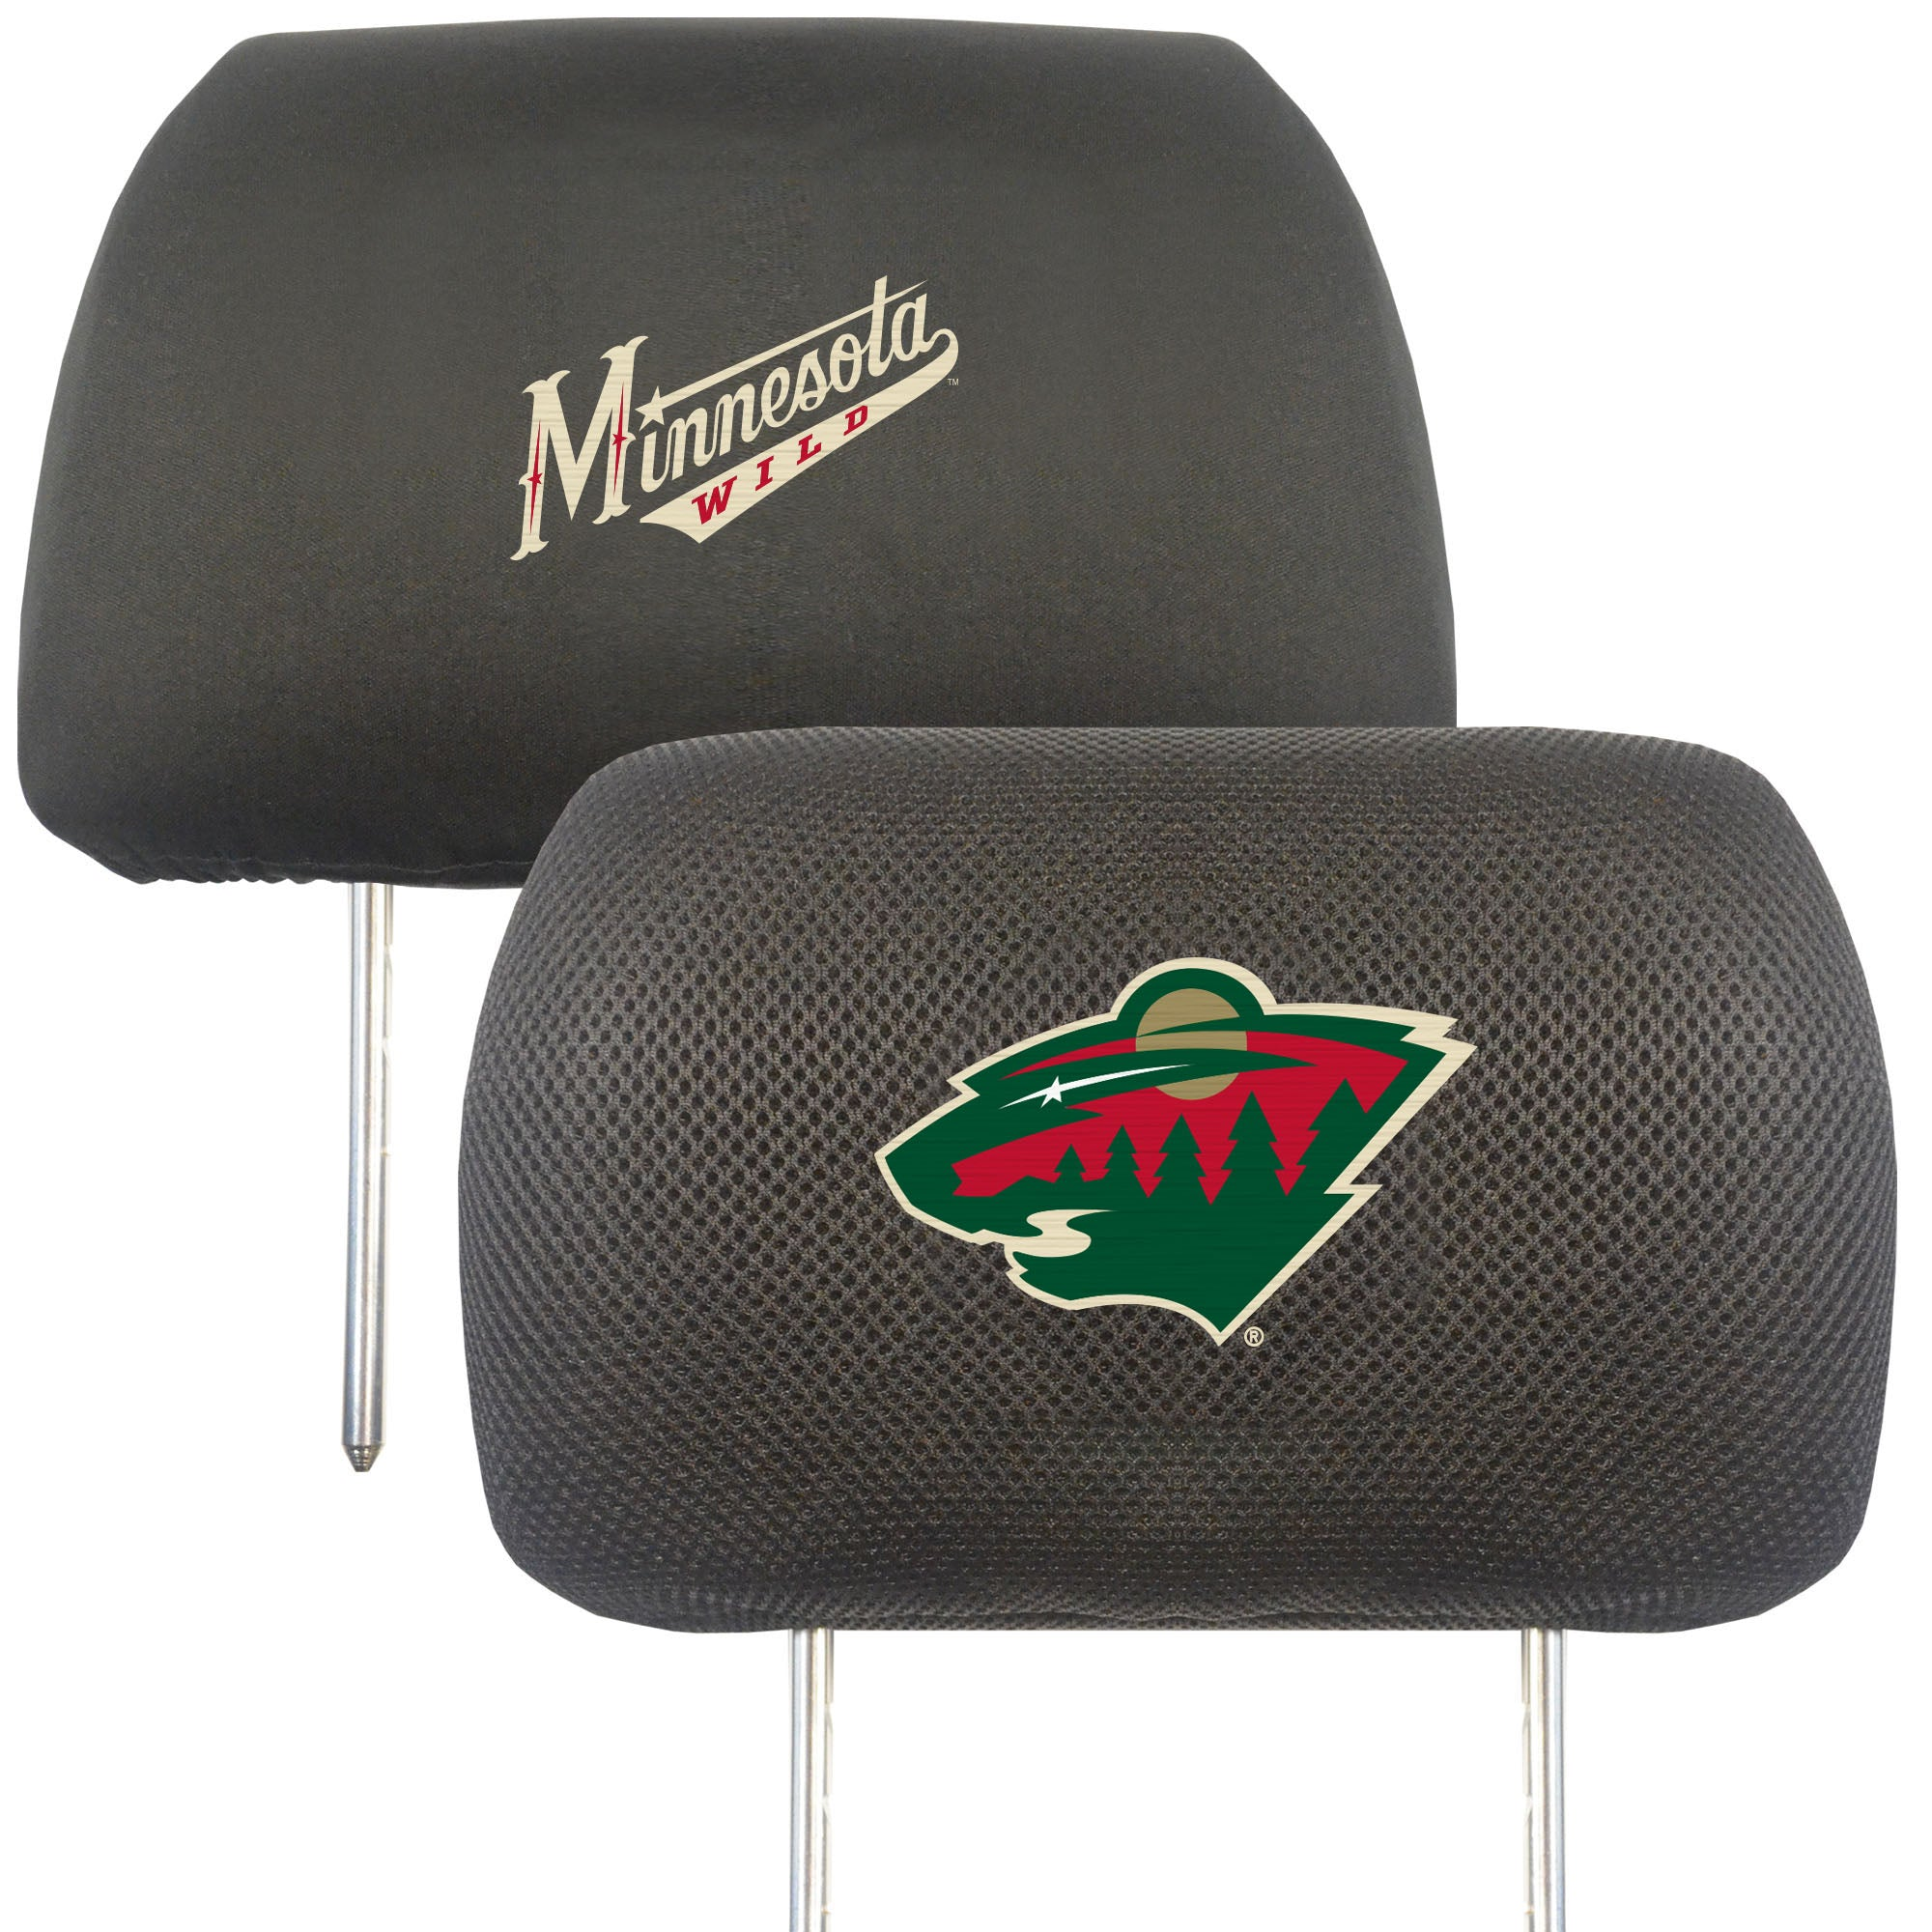 "NHL - Minnesota Wild Head Rest Cover 10""x13"""